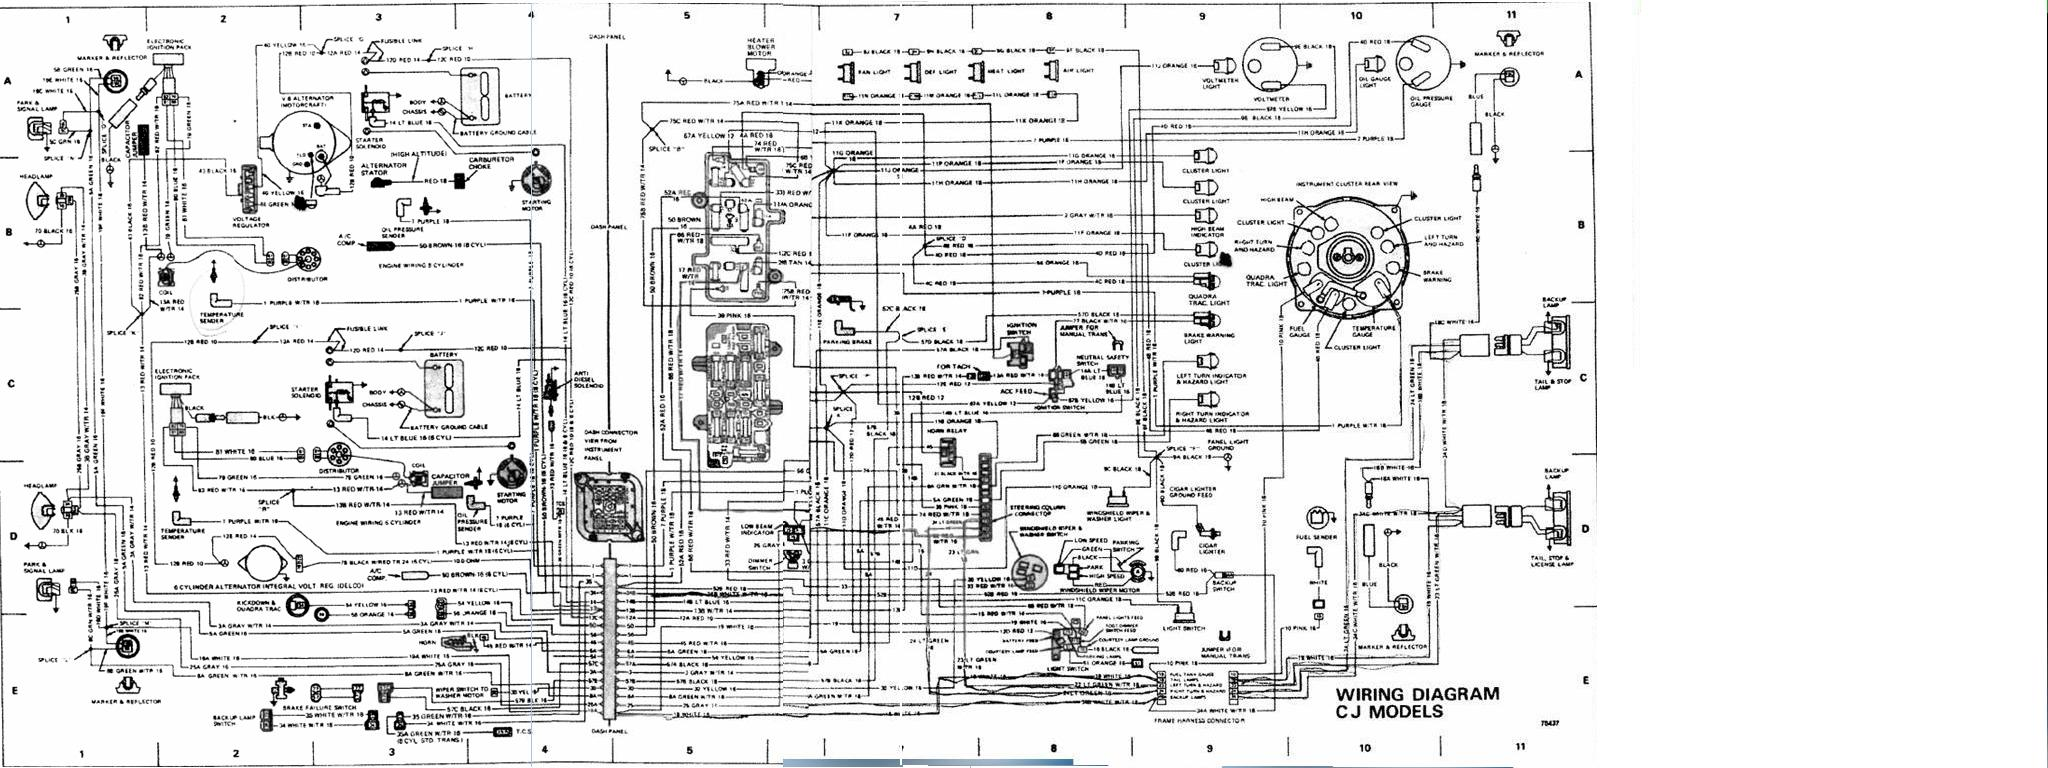 efc86 olympian d20p1 generator wiring schematic | wiring resources  wiring resources